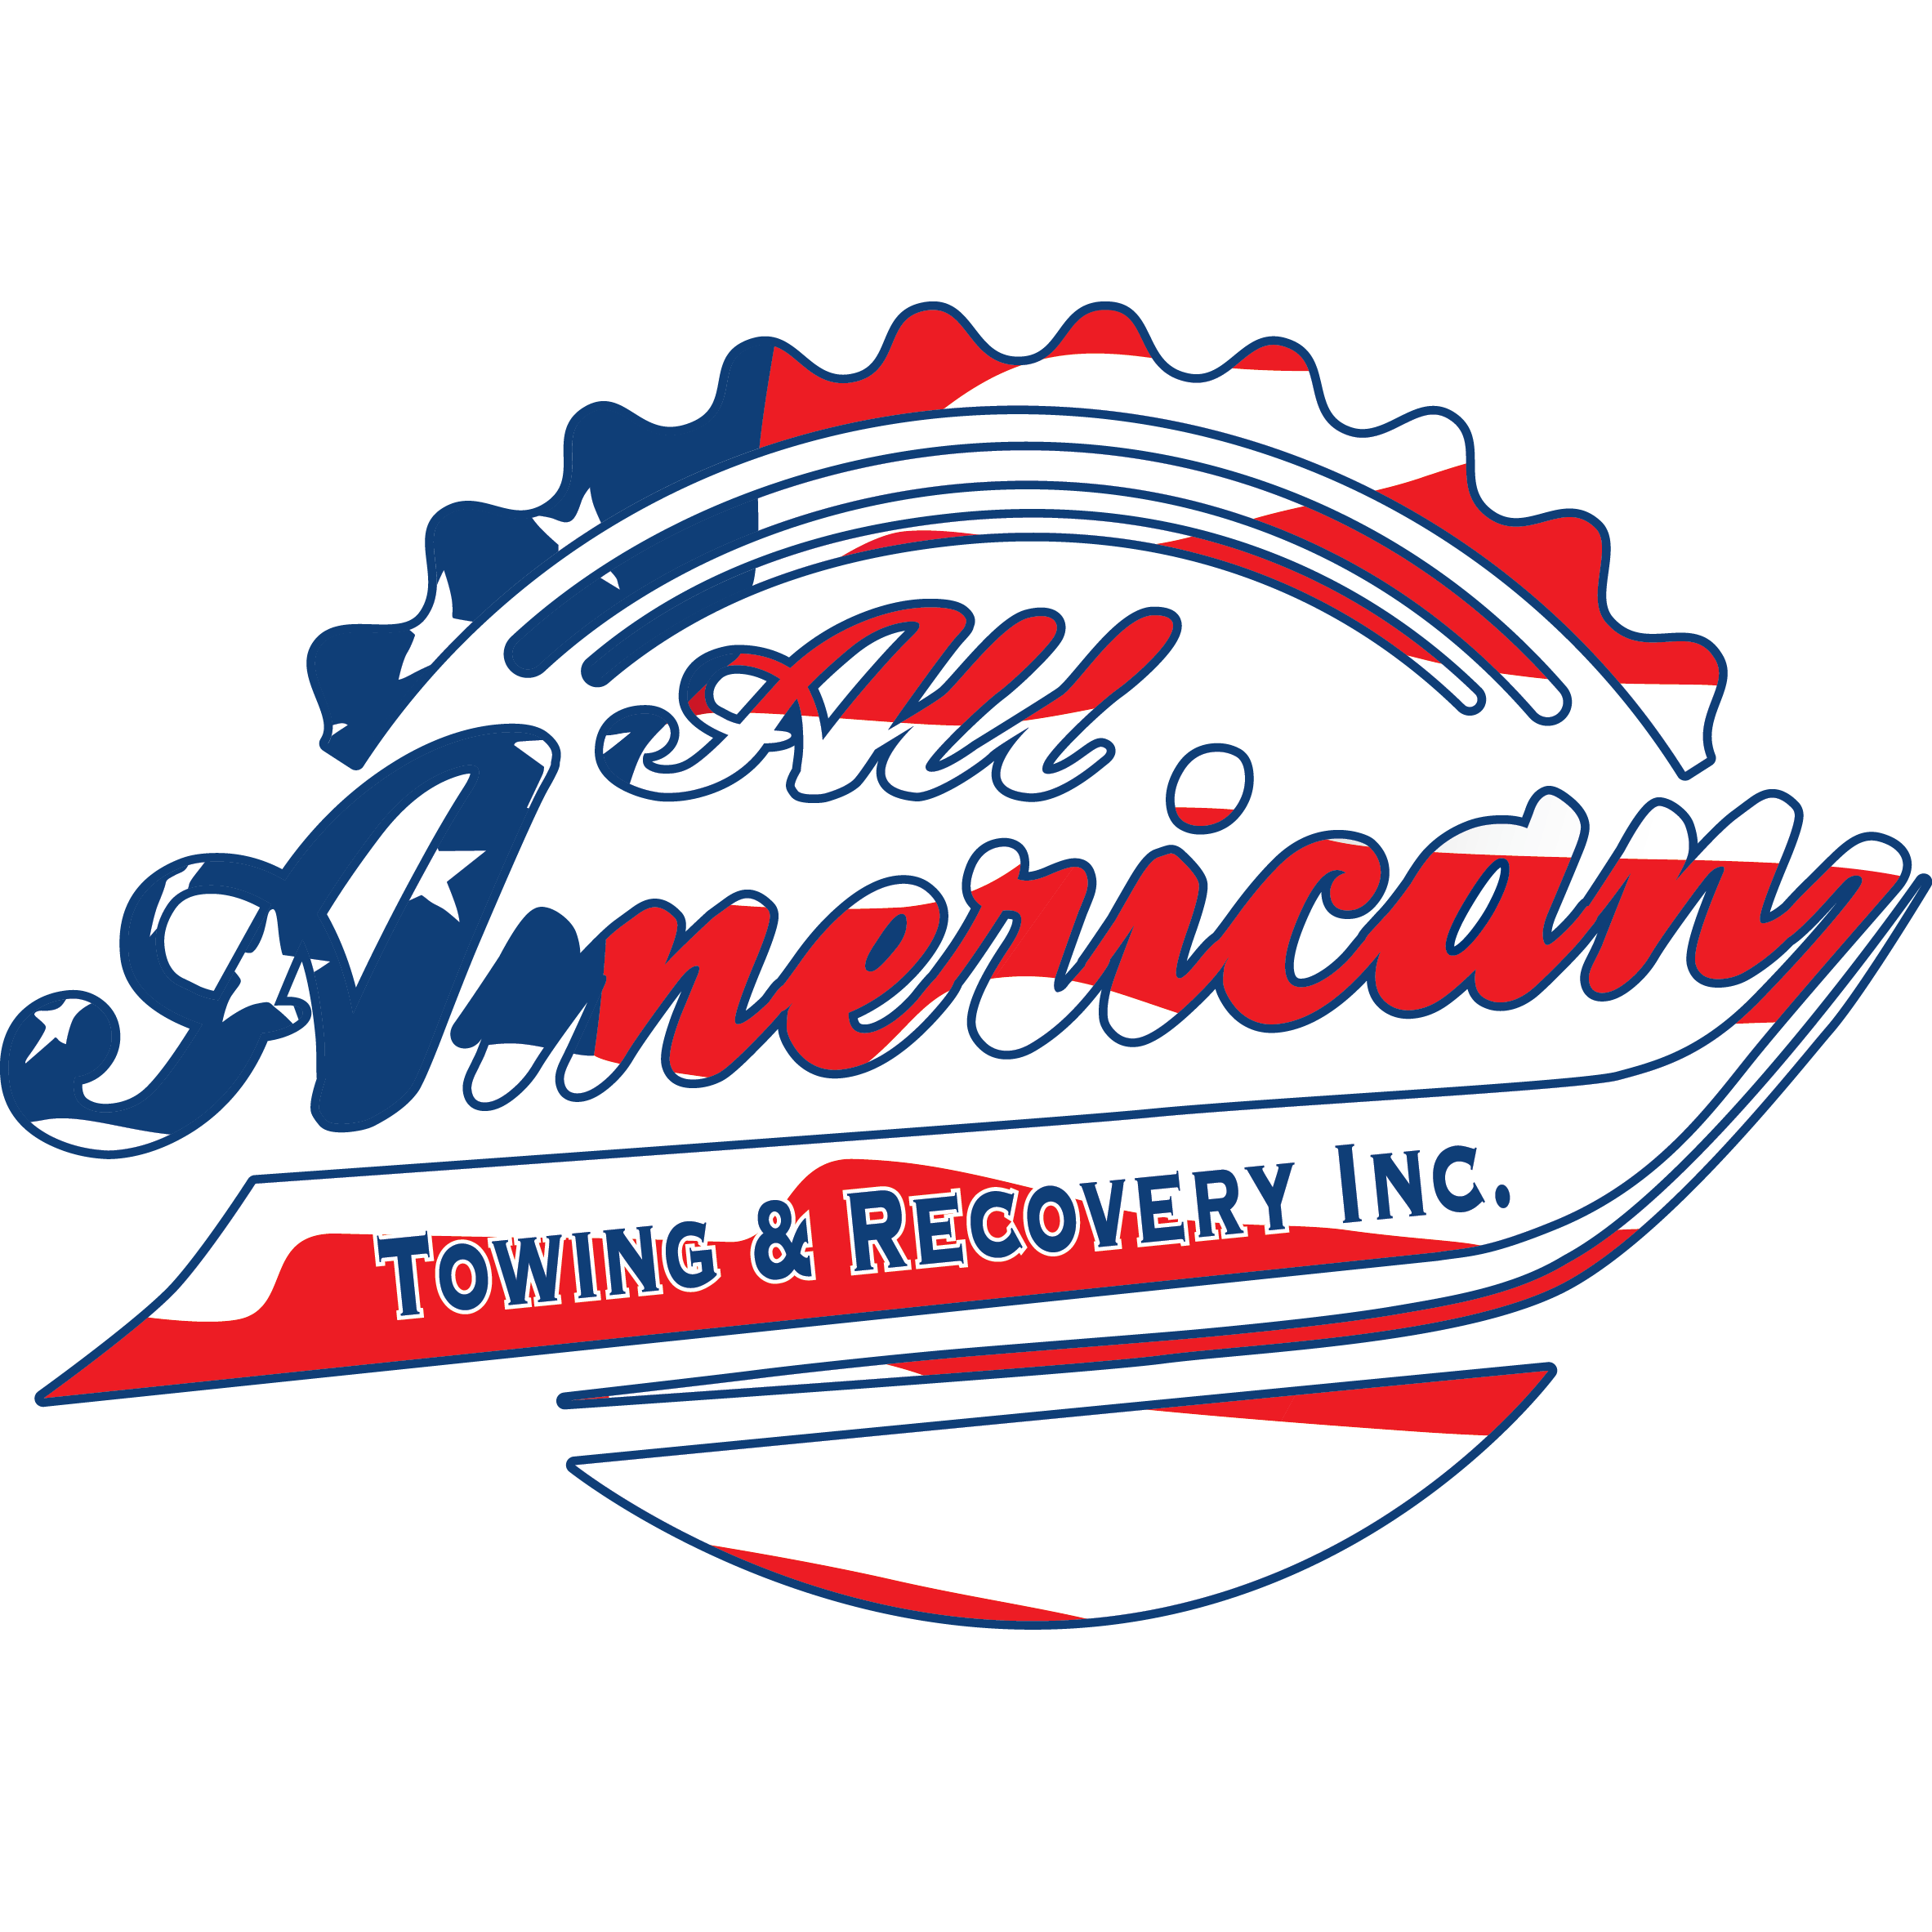 All American Towing & Recovery - Denton, TX - Auto Towing & Wrecking